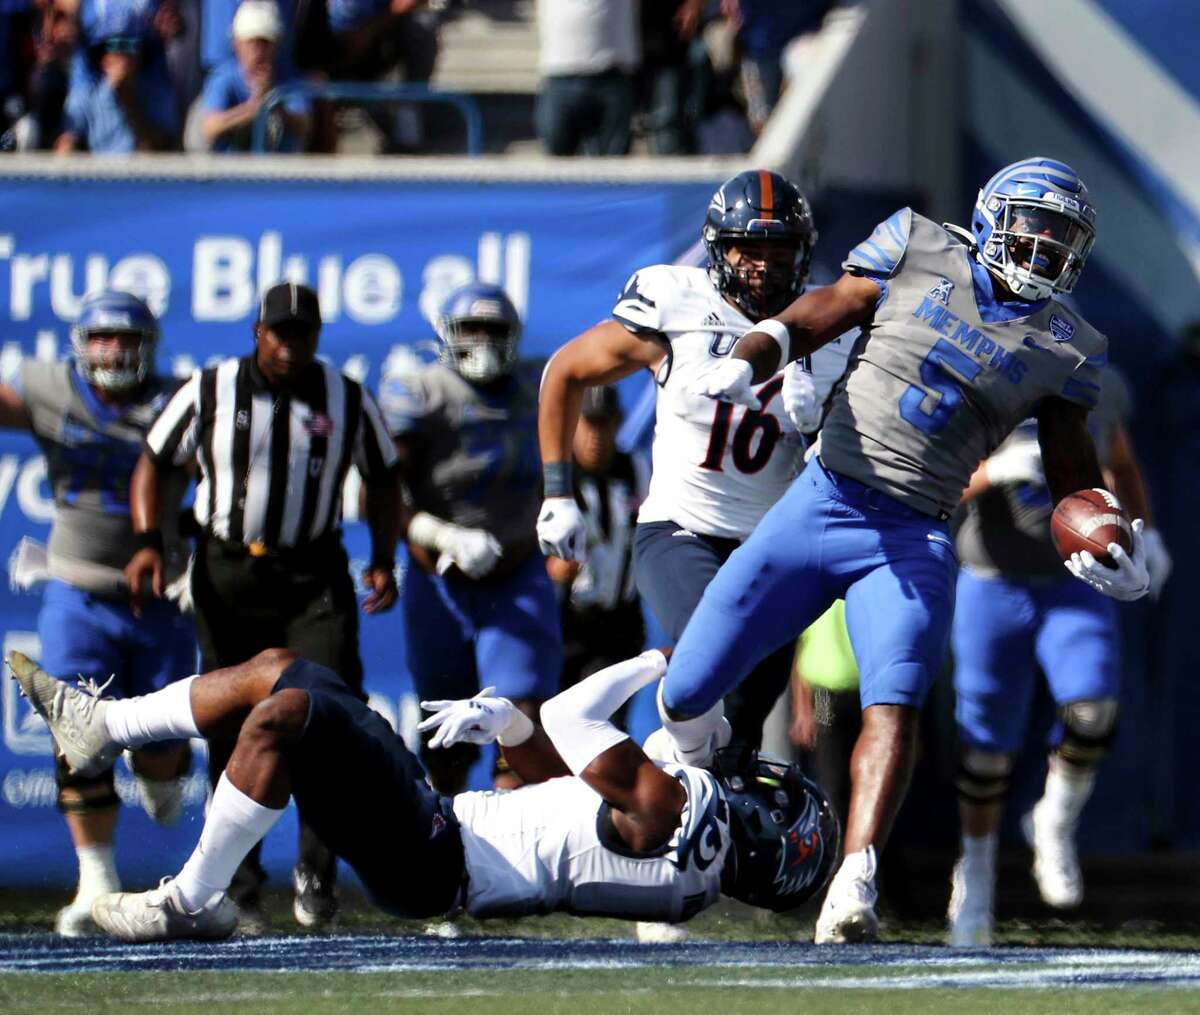 The UTSA defense tries to stop tight end Sean Dykes during Saturday's game. The Roadrunners ended Memphis' 17-game home winning streak.